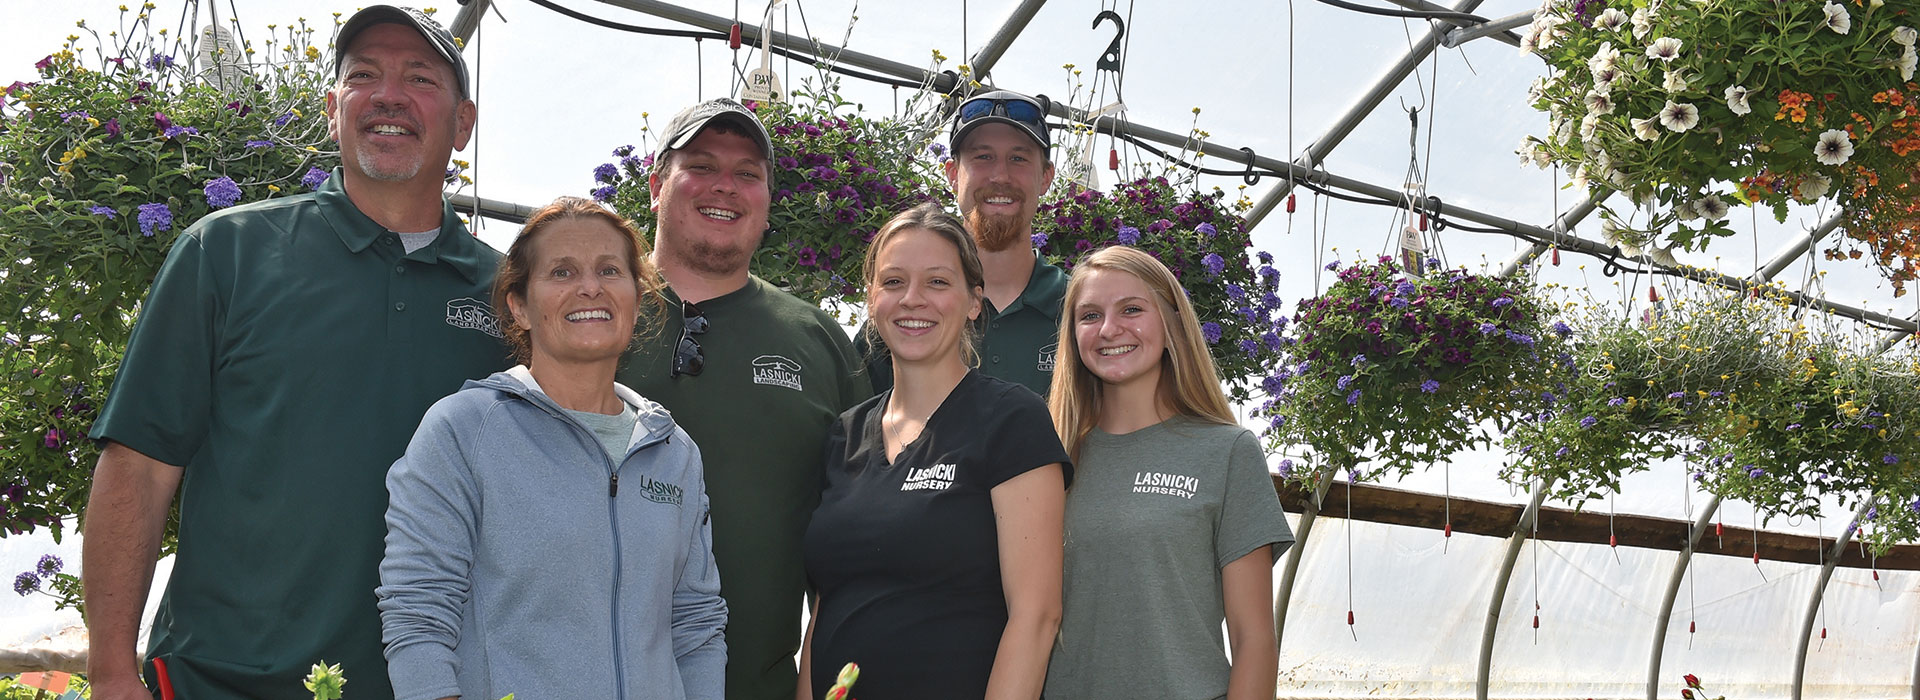 Photo by Scott Schild From left, Andy, Susan, Drew and Abby Lasnicki, Addison Moran, Ciara Putman (current SUNY Morrisville student).